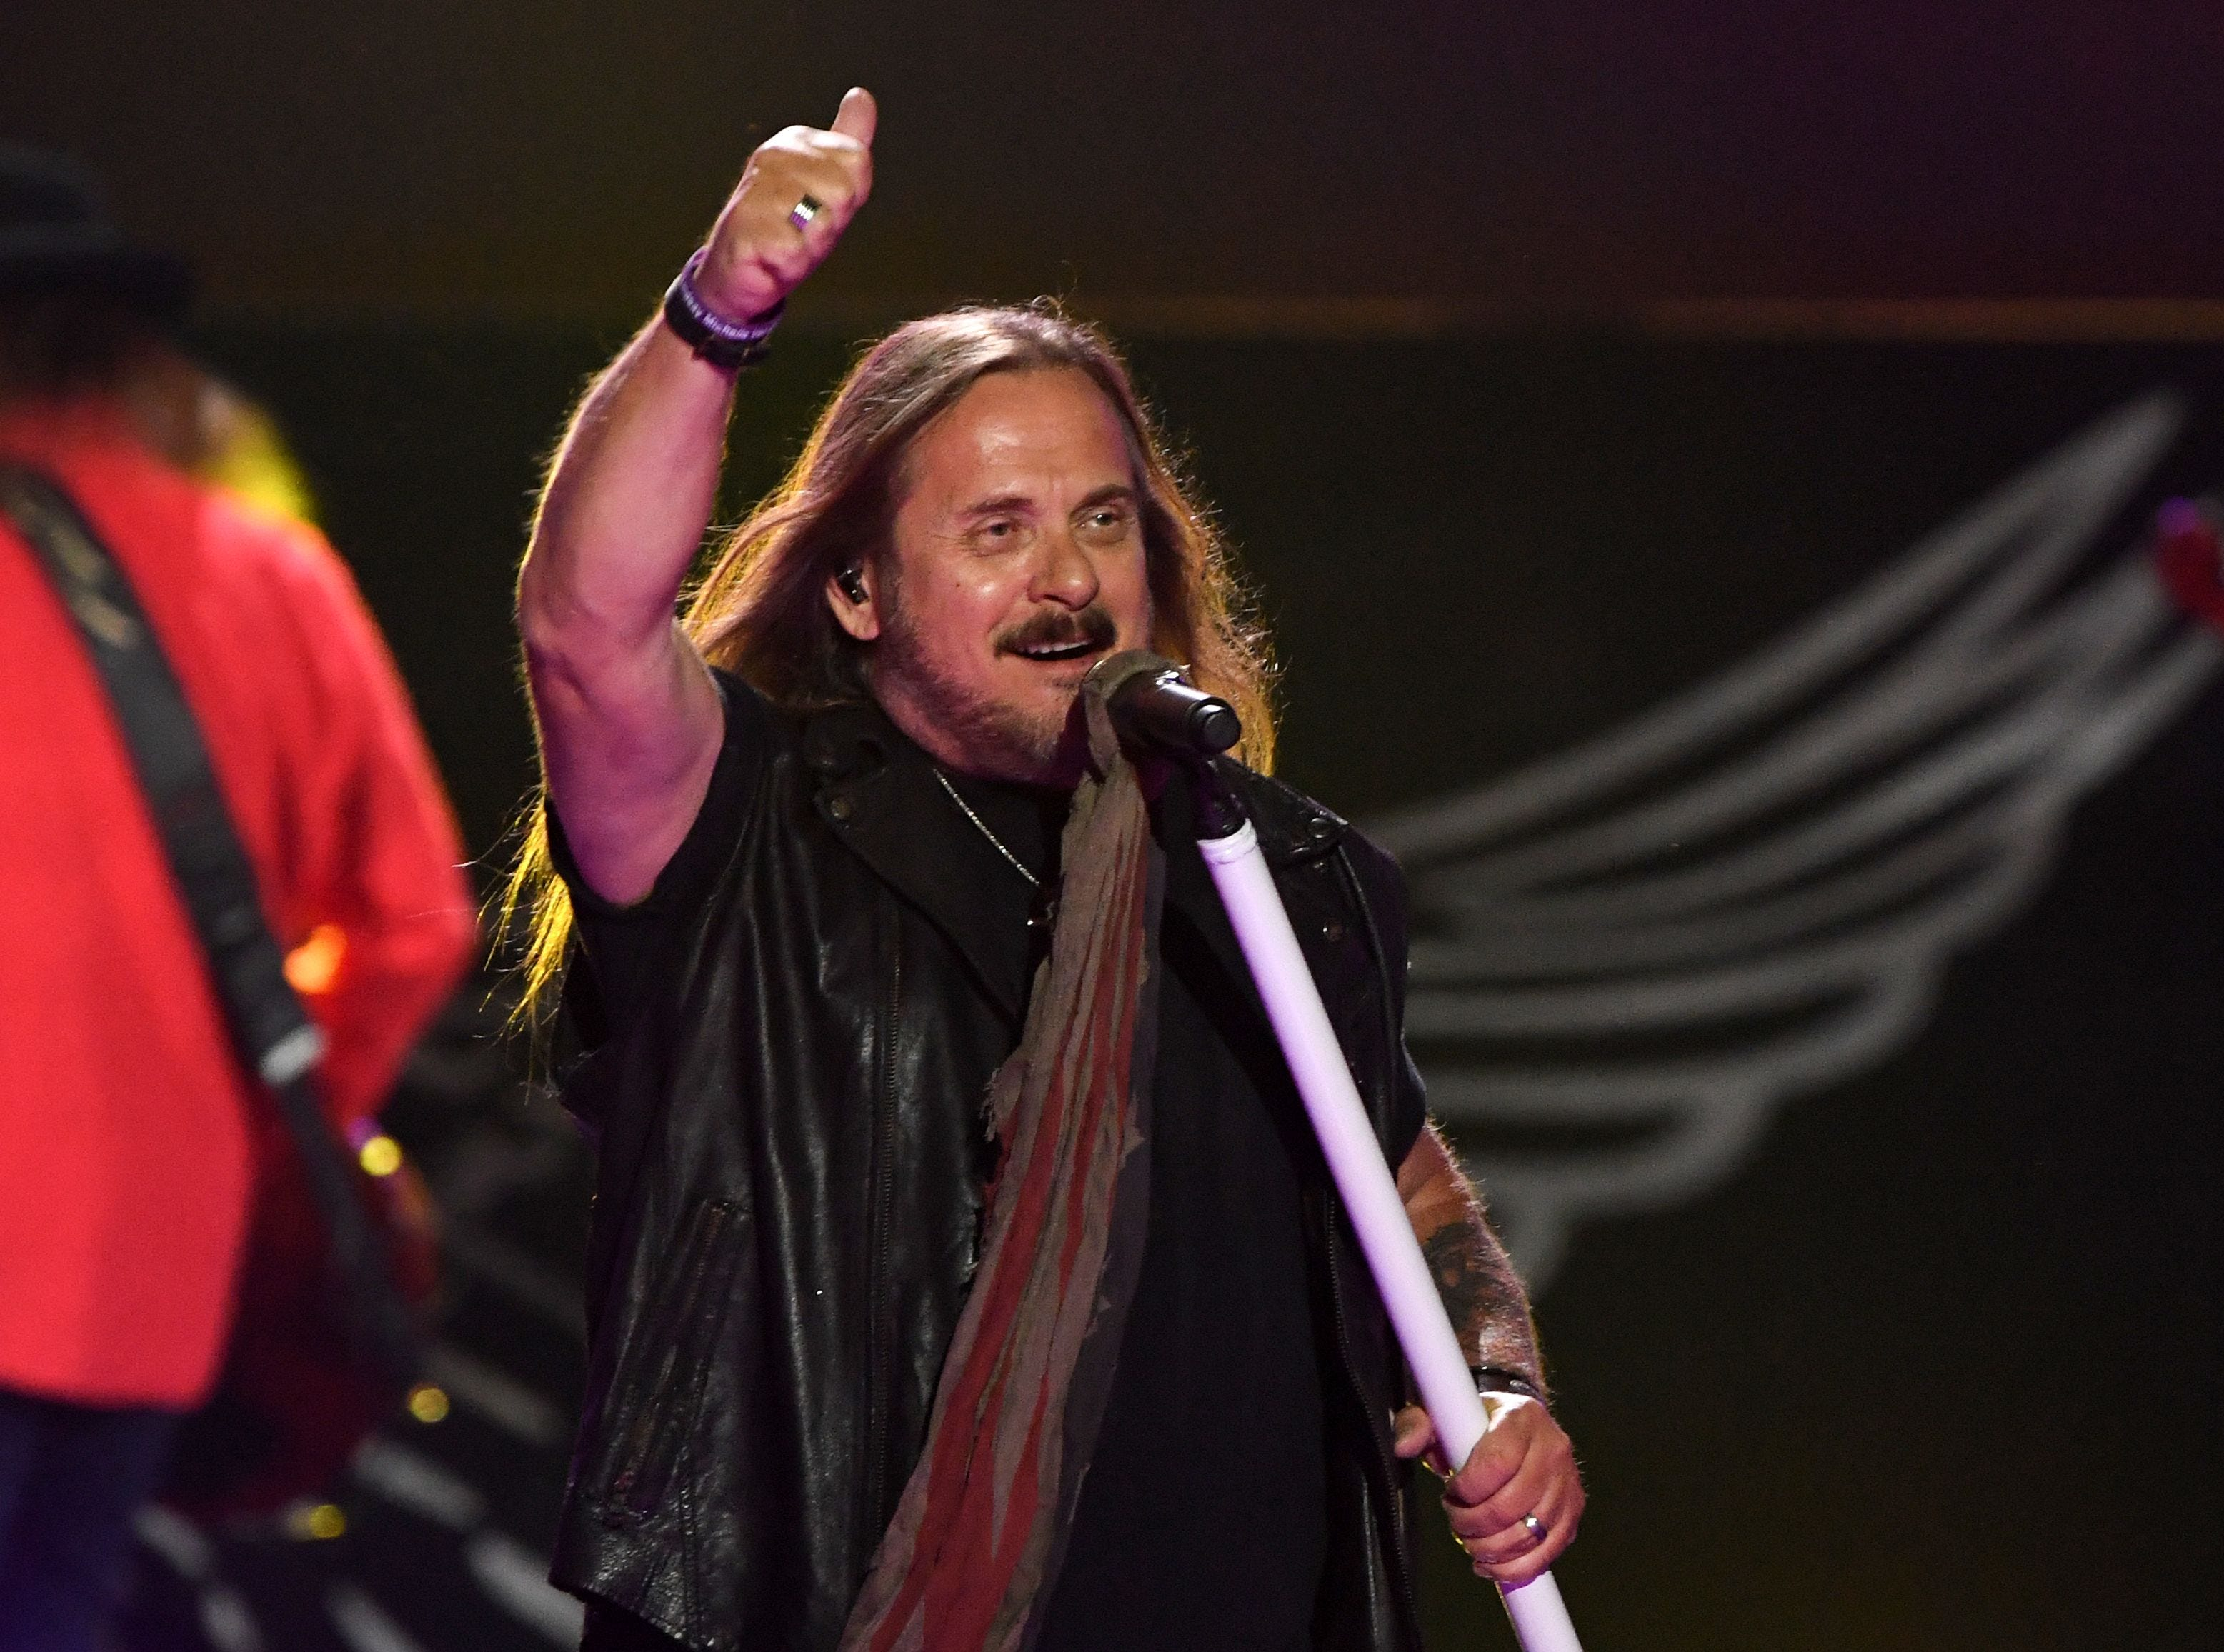 Johnny Van Zant of Lynyrd Skynyrd works the crowd during the iHeartRadio Music Festival in Las Vegas last month.